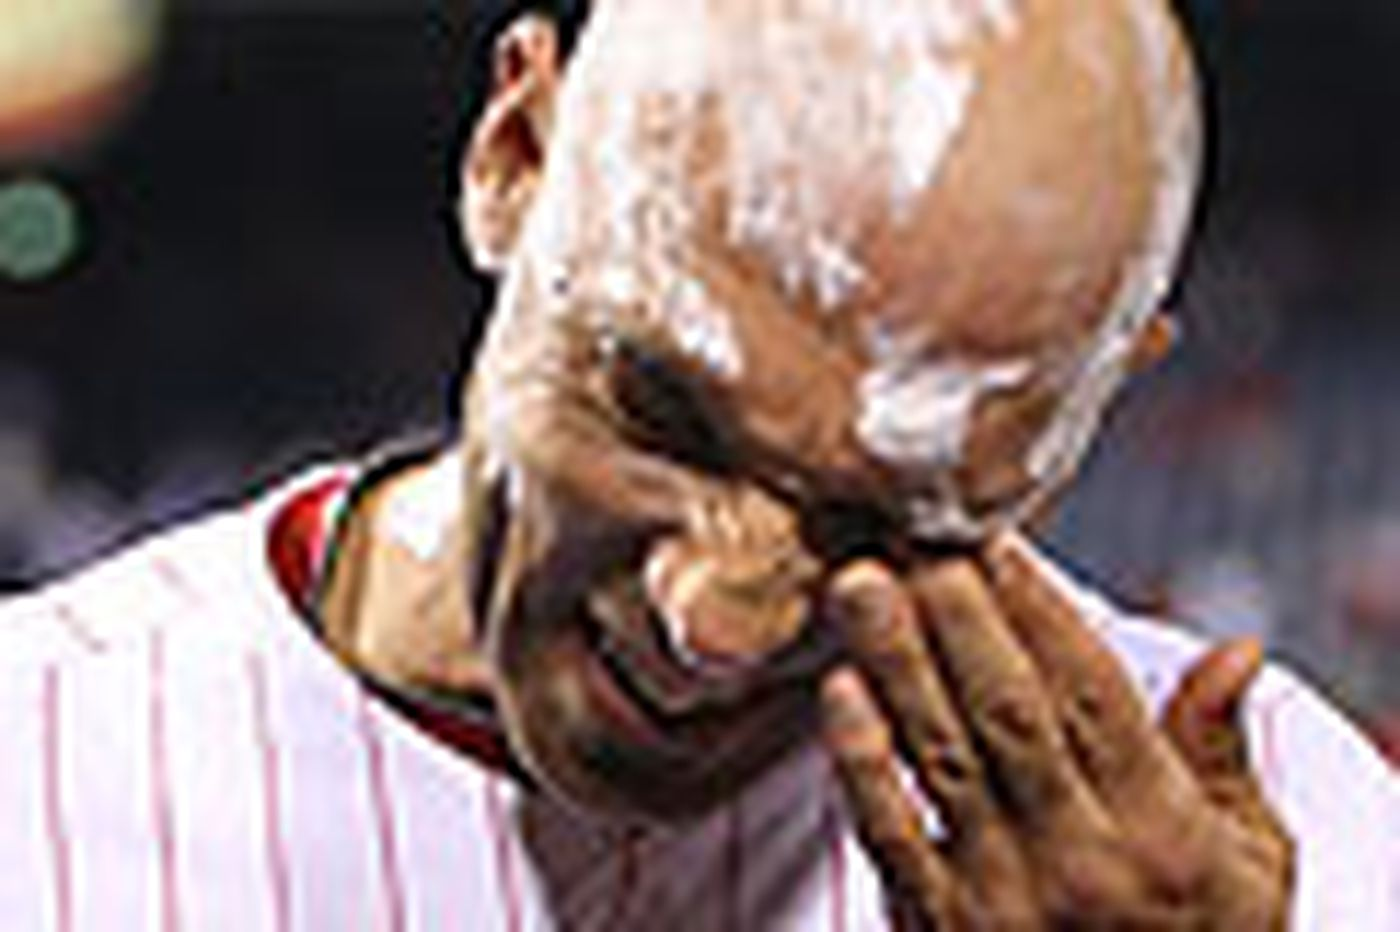 Phillies-Reds: Aftermath of 19-inning game